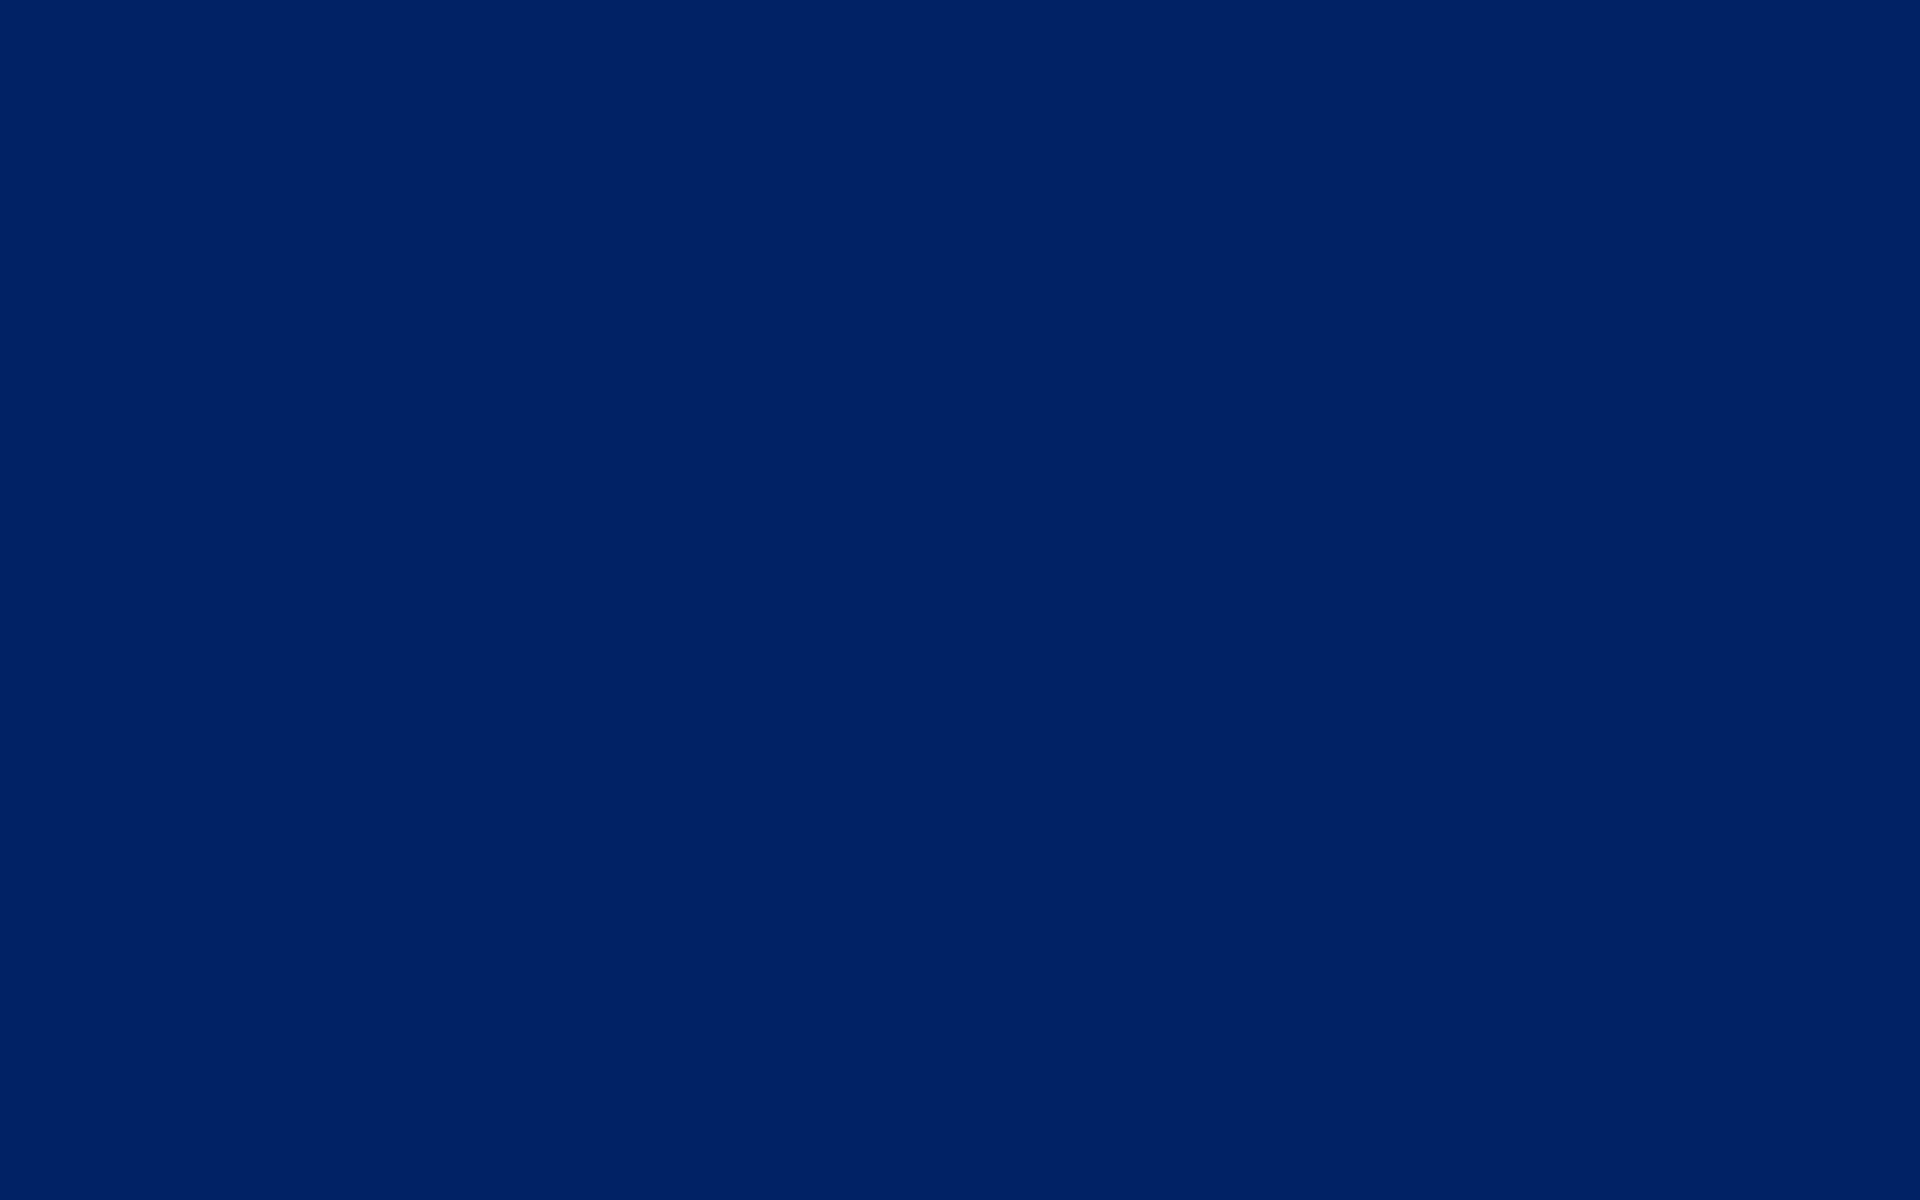 download vector entries about royal blue background post 3 cevector 1920x1200